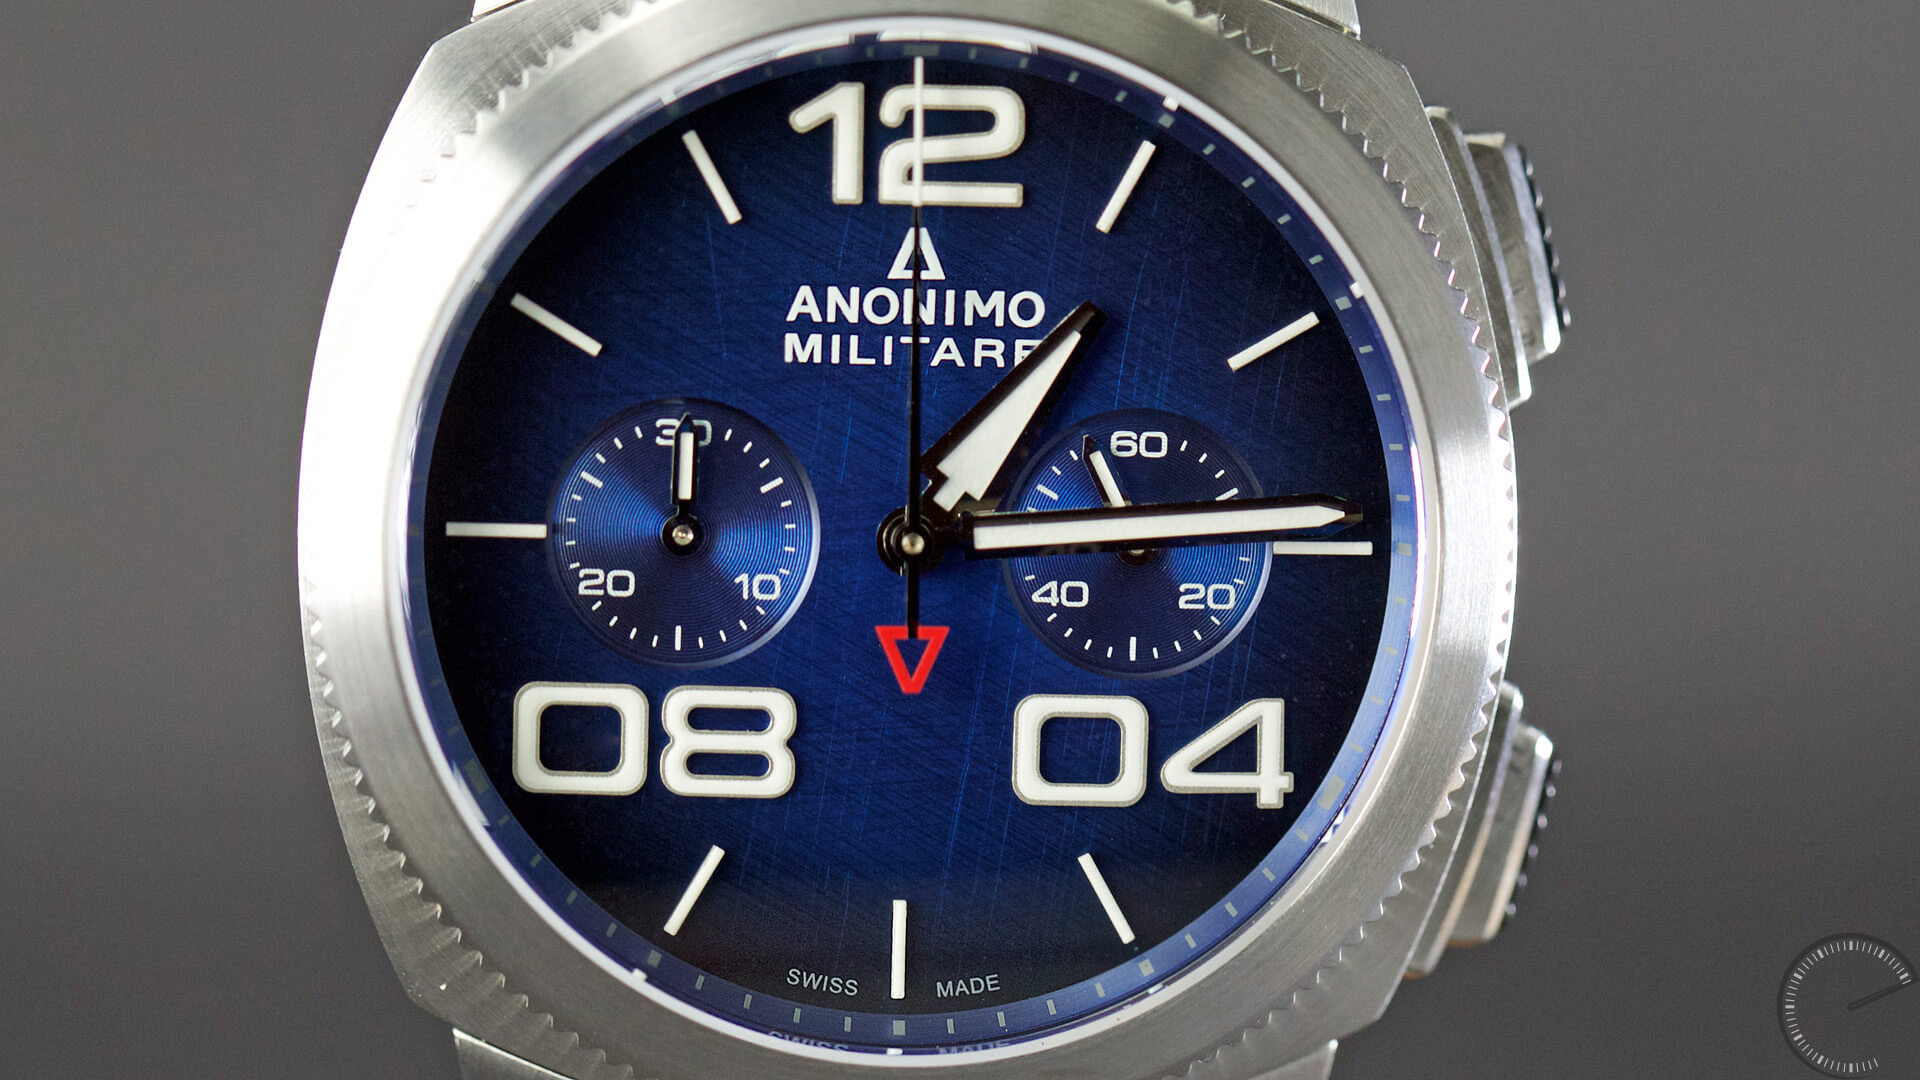 Anonimo_Militaire_Classic_Chrono_blue_dial_dial1 - ESCAPEMENT magazine - watch reviews by Angus Davies